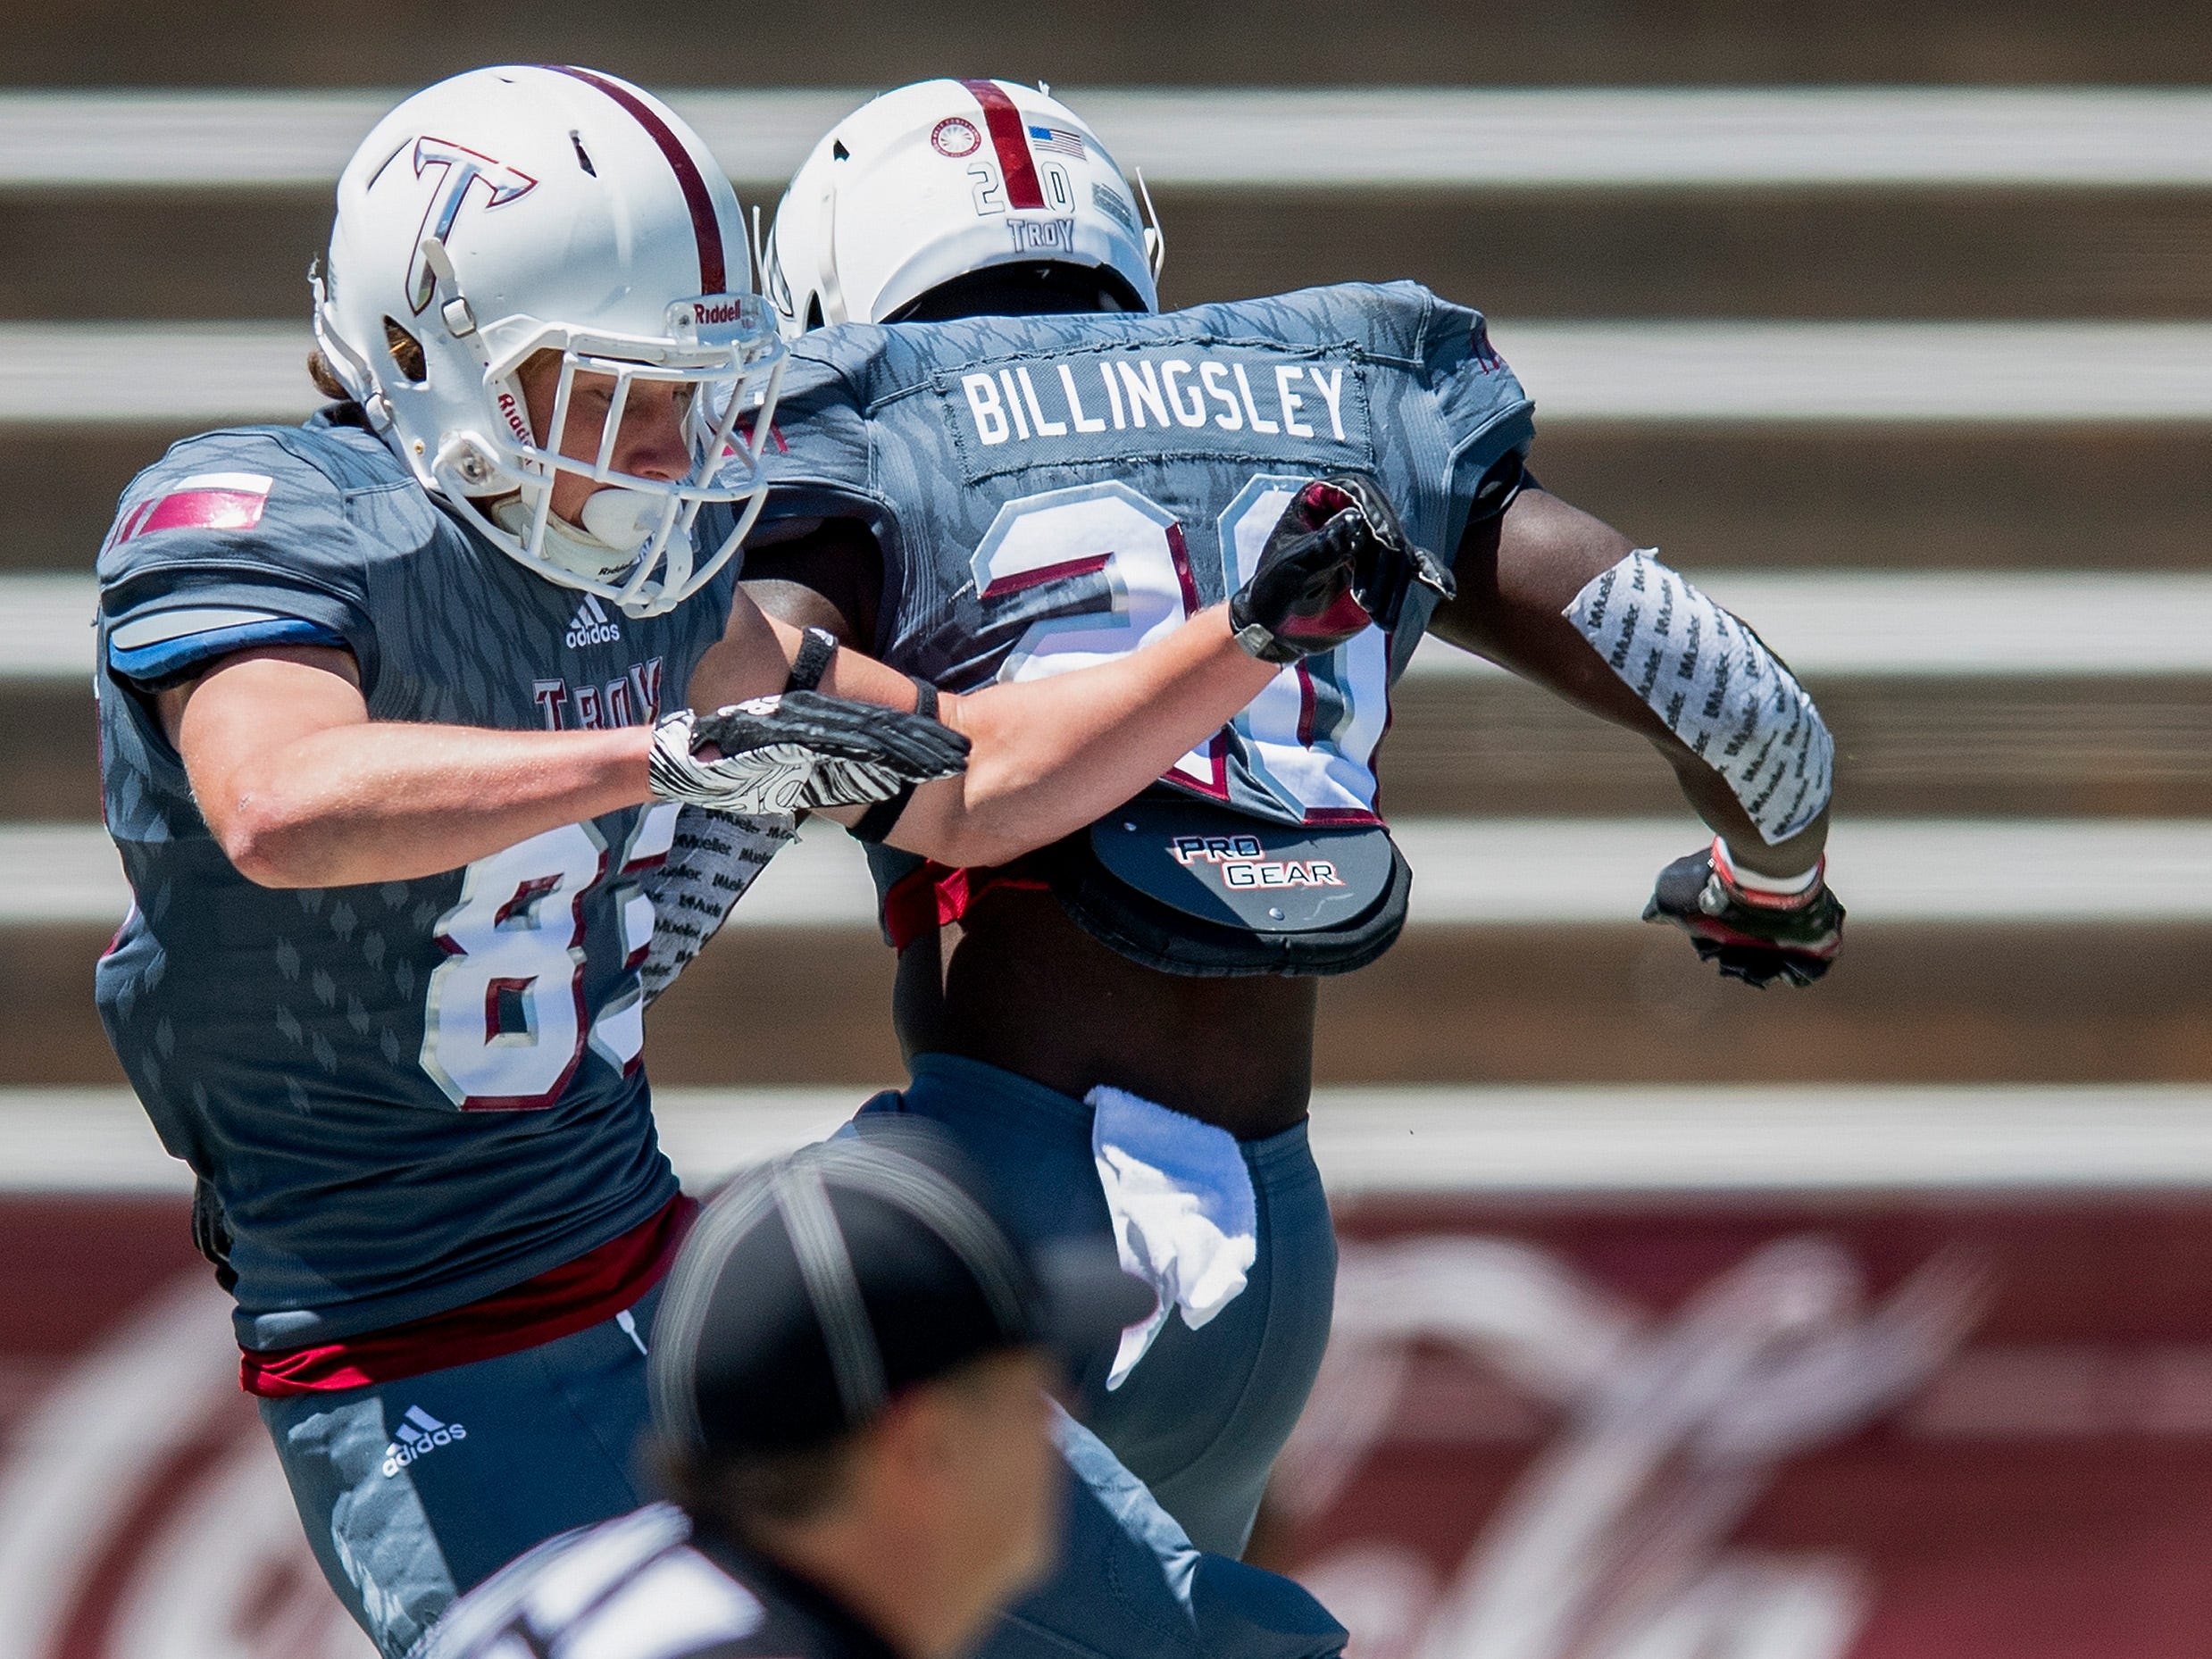 Troy wide receiver Luke Whittemore (83) celebrates with running back DK Billingsley (20) after scoring a touchdown during the Troy University T-Day spring scrimmage game in Troy, Ala., on Saturday April 20, 2019.